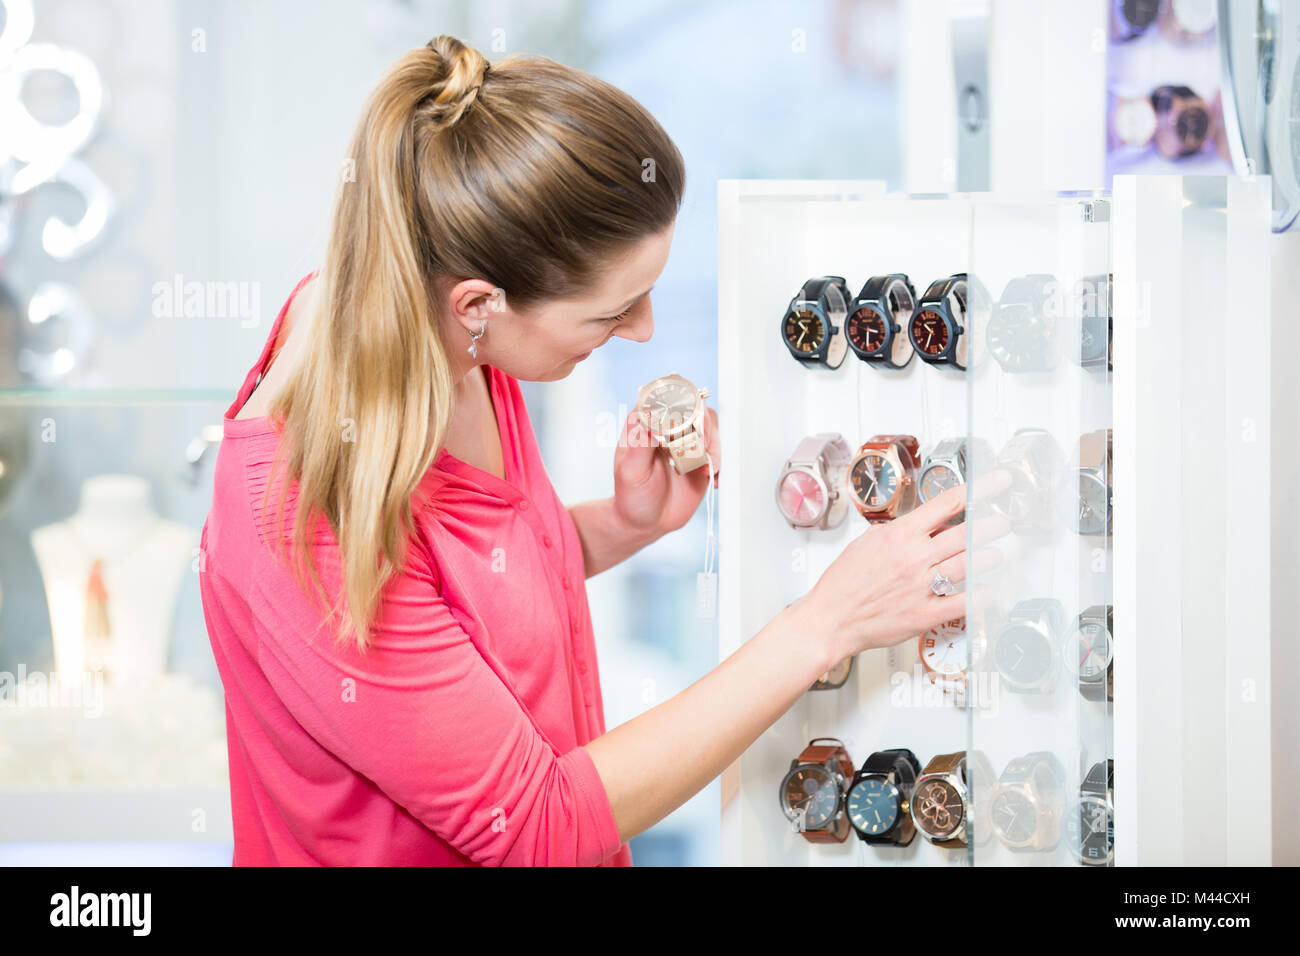 Female customer in store looking for wristwatches - Stock Image